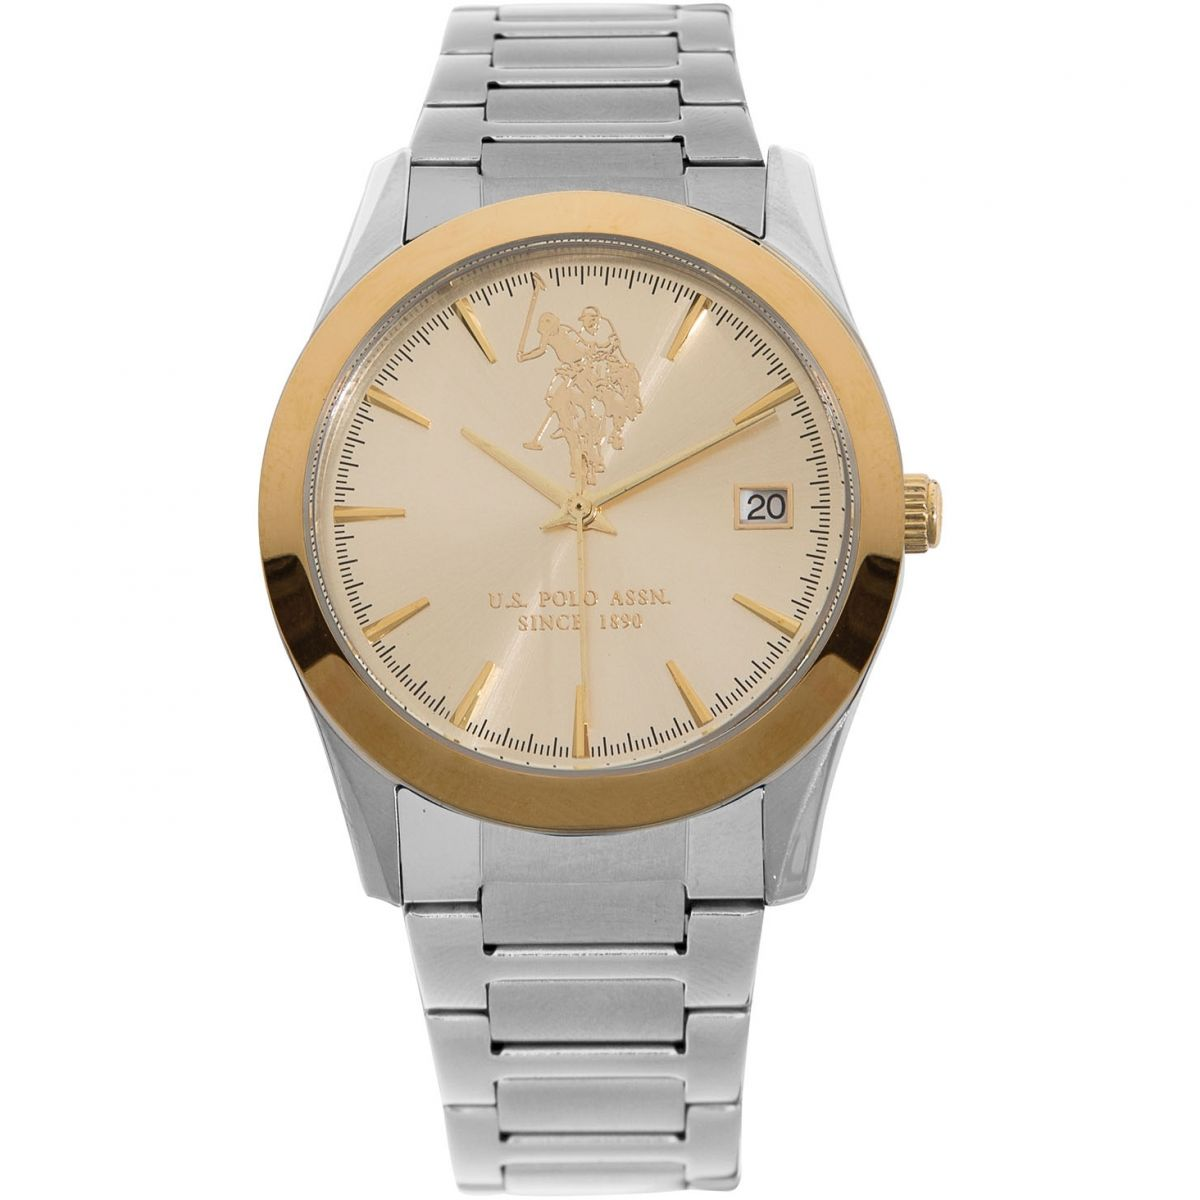 Us Polo Association Reloj Para Unisex Plata Usp5410yg